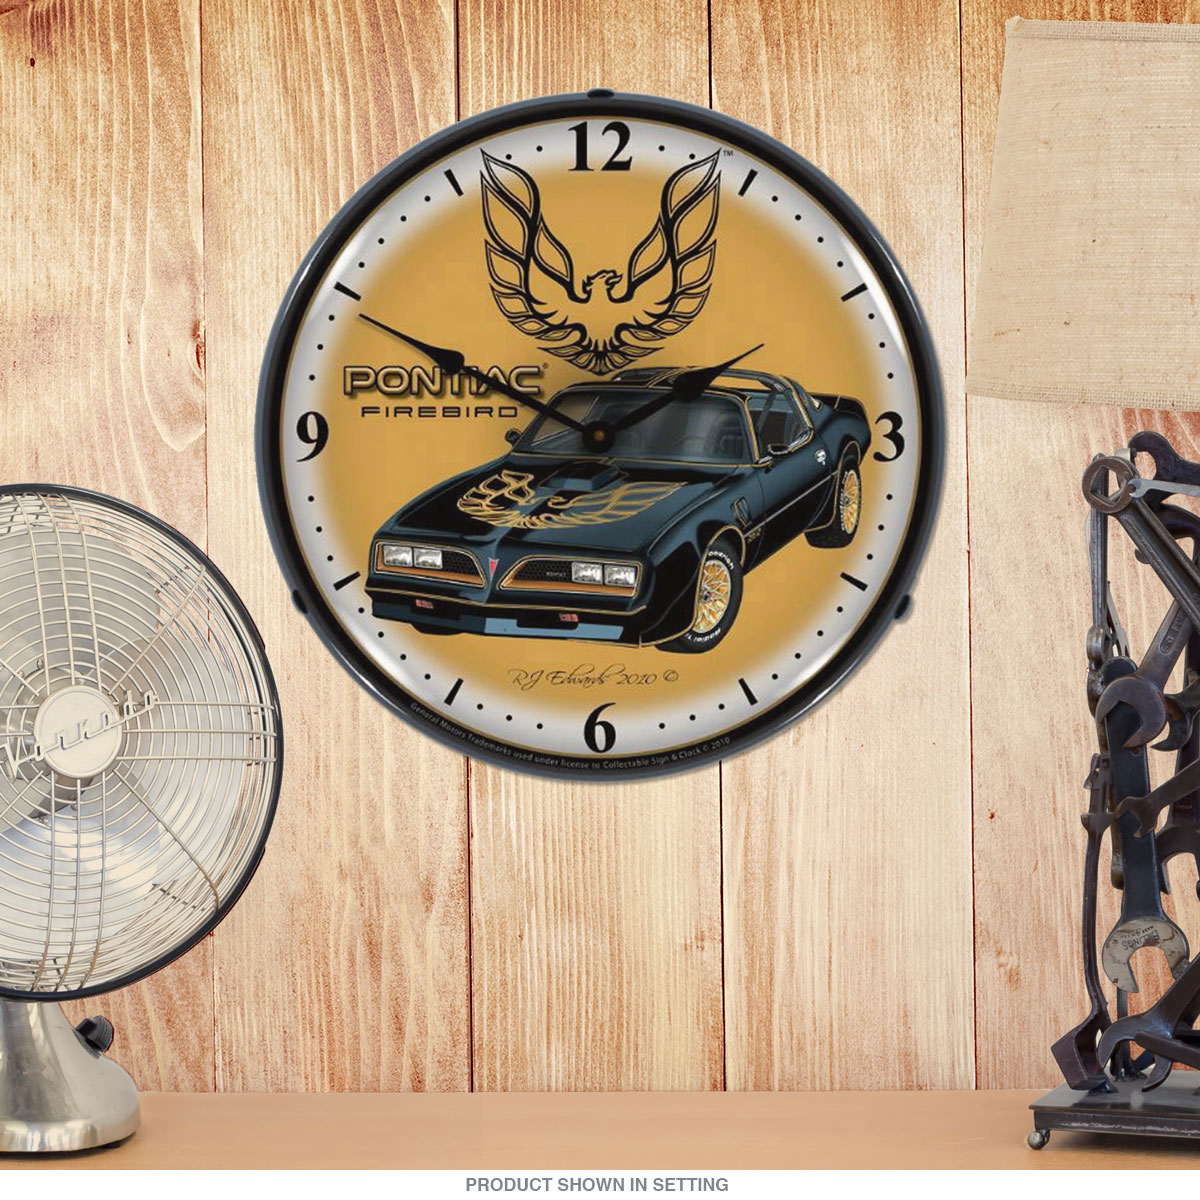 Pontiac 1977 Firebird Black Light Up Garage Clock